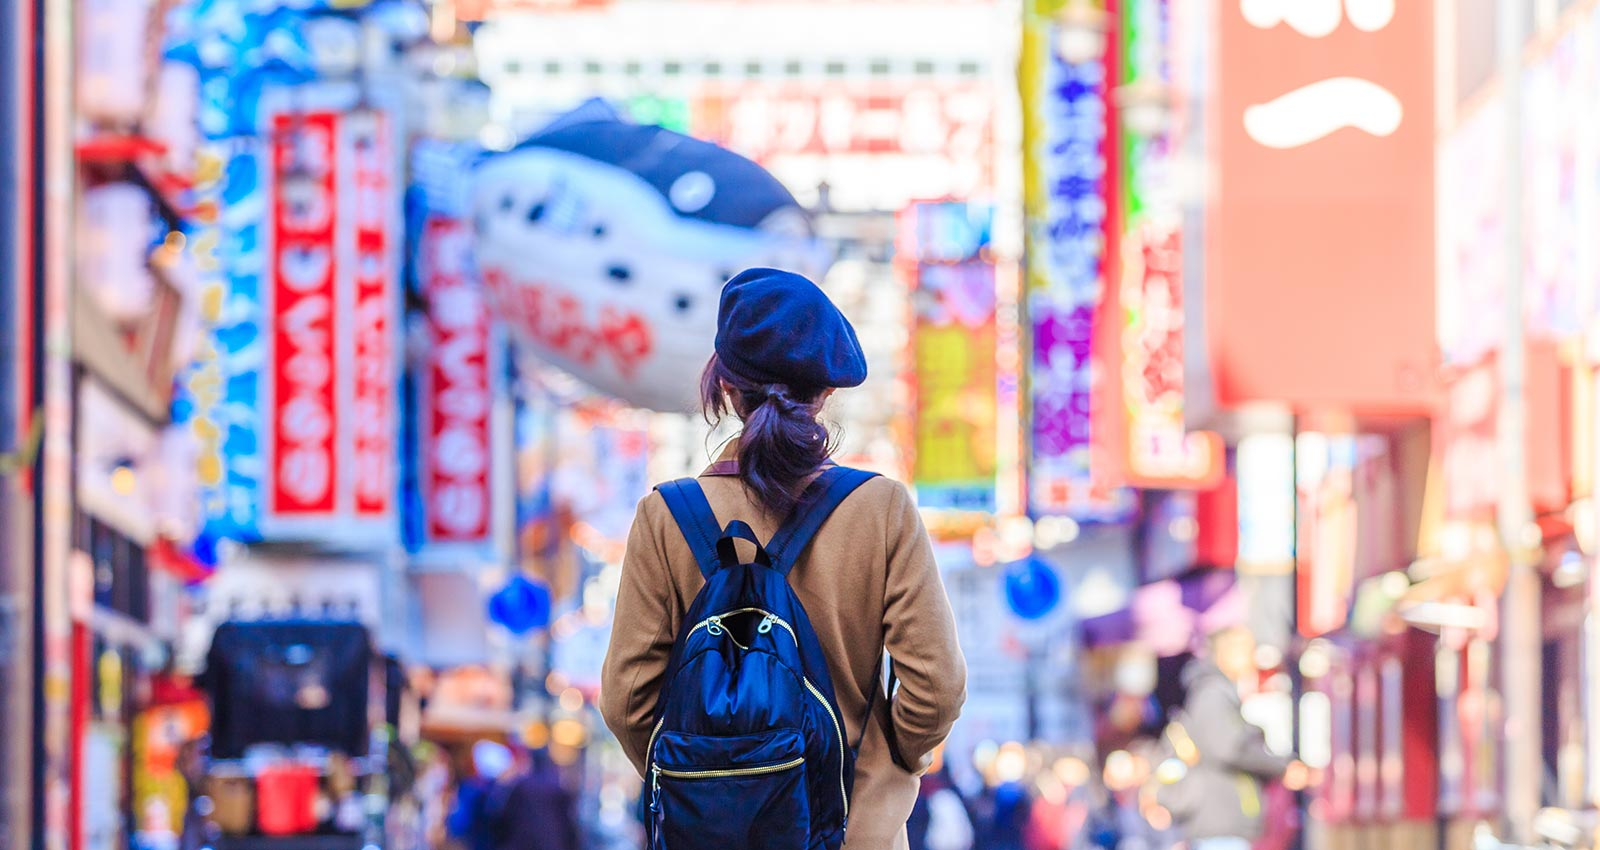 Living in Japan, Millenials around the world, learning about celebrations and friendships, culture exploring, education